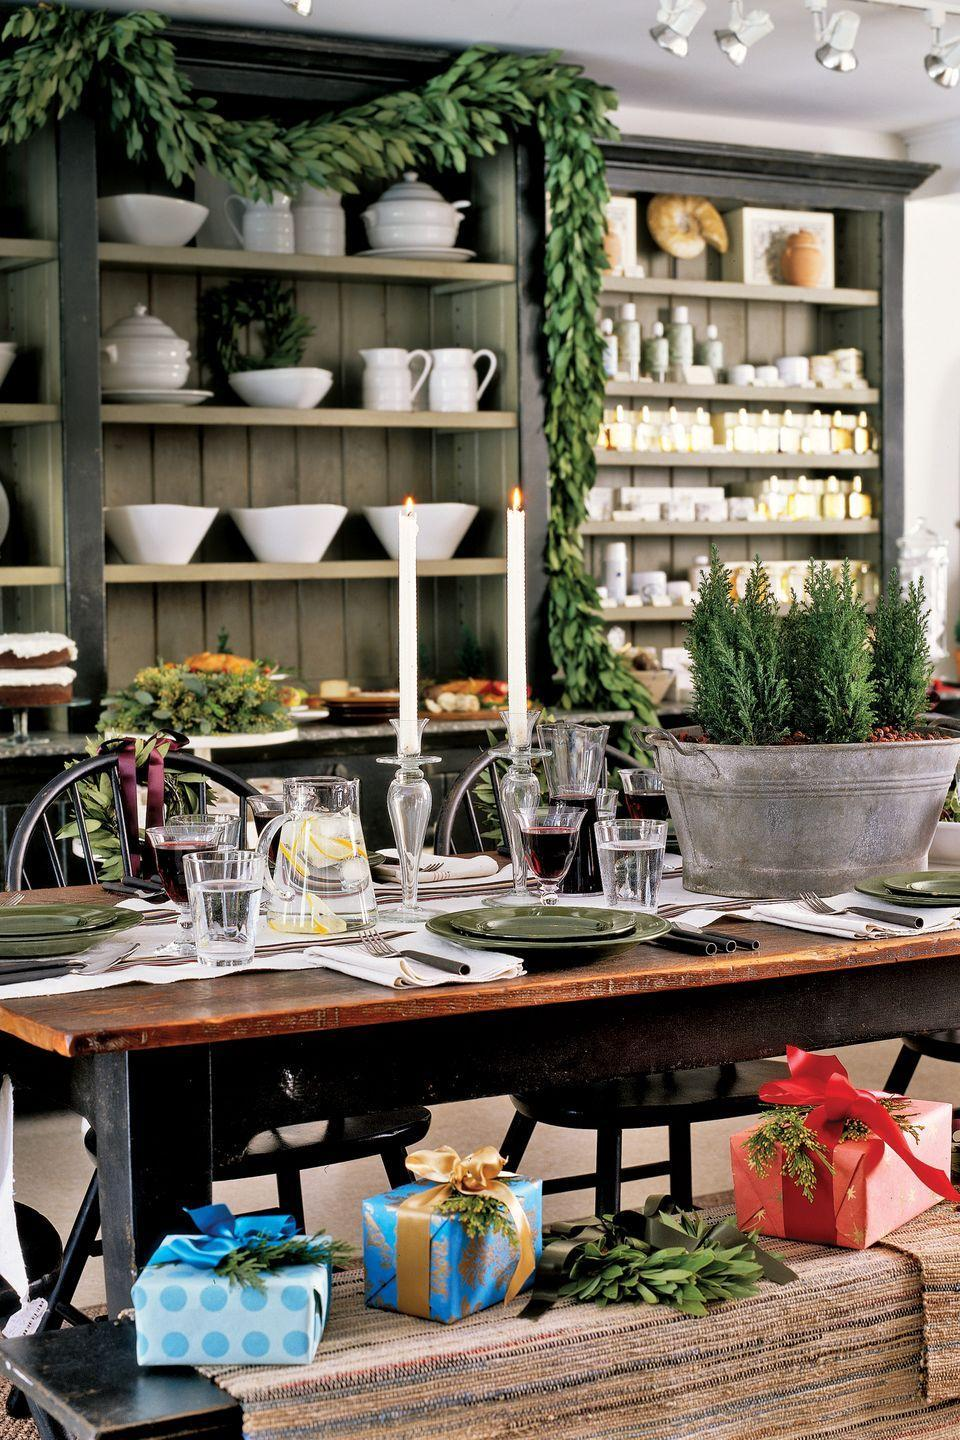 "<p>A long table features an unexpected centerpiece of live miniature trees and dried rose hips in a galvanized tub. Bright gifts serve as place cards, and lush garlands line exposed shelves.</p><p><a class=""link rapid-noclick-resp"" href=""https://go.redirectingat.com?id=74968X1596630&url=https%3A%2F%2Fwww.worldmarket.com%2Fproduct%2Fmetal-party-tub.do%3Fsortby%3DourPicks&sref=https%3A%2F%2Fwww.countryliving.com%2Fdiy-crafts%2Fg644%2Fchristmas-tables-1208%2F"" rel=""nofollow noopener"" target=""_blank"" data-ylk=""slk:SHOP GALVANIZED TUB"">SHOP GALVANIZED TUB</a></p>"